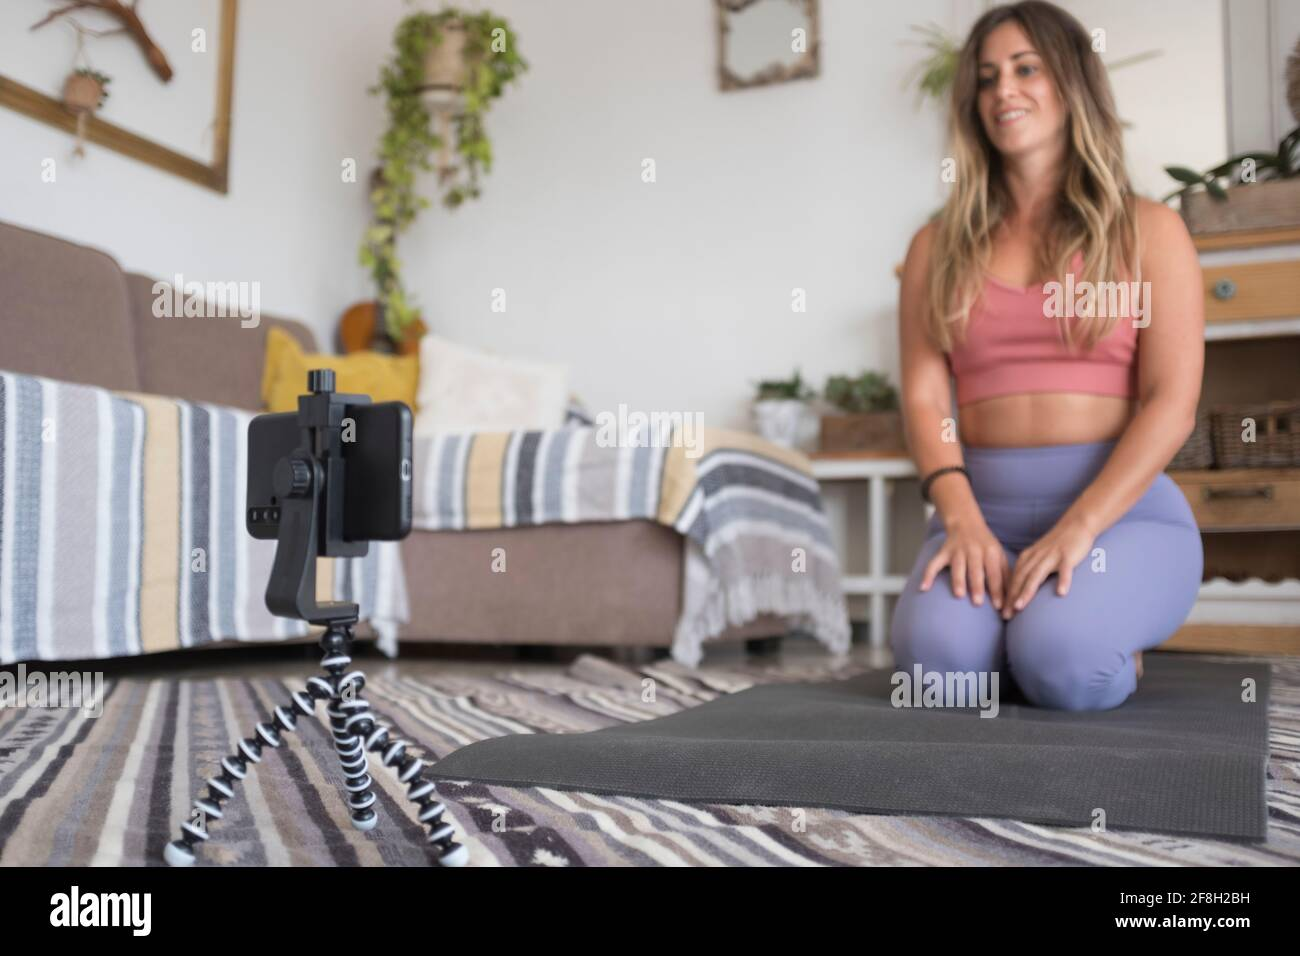 Young personal trainer home work do online class using mobile phone and internet connection - active healthy lifestyle content creator influencer - mo Stock Photo